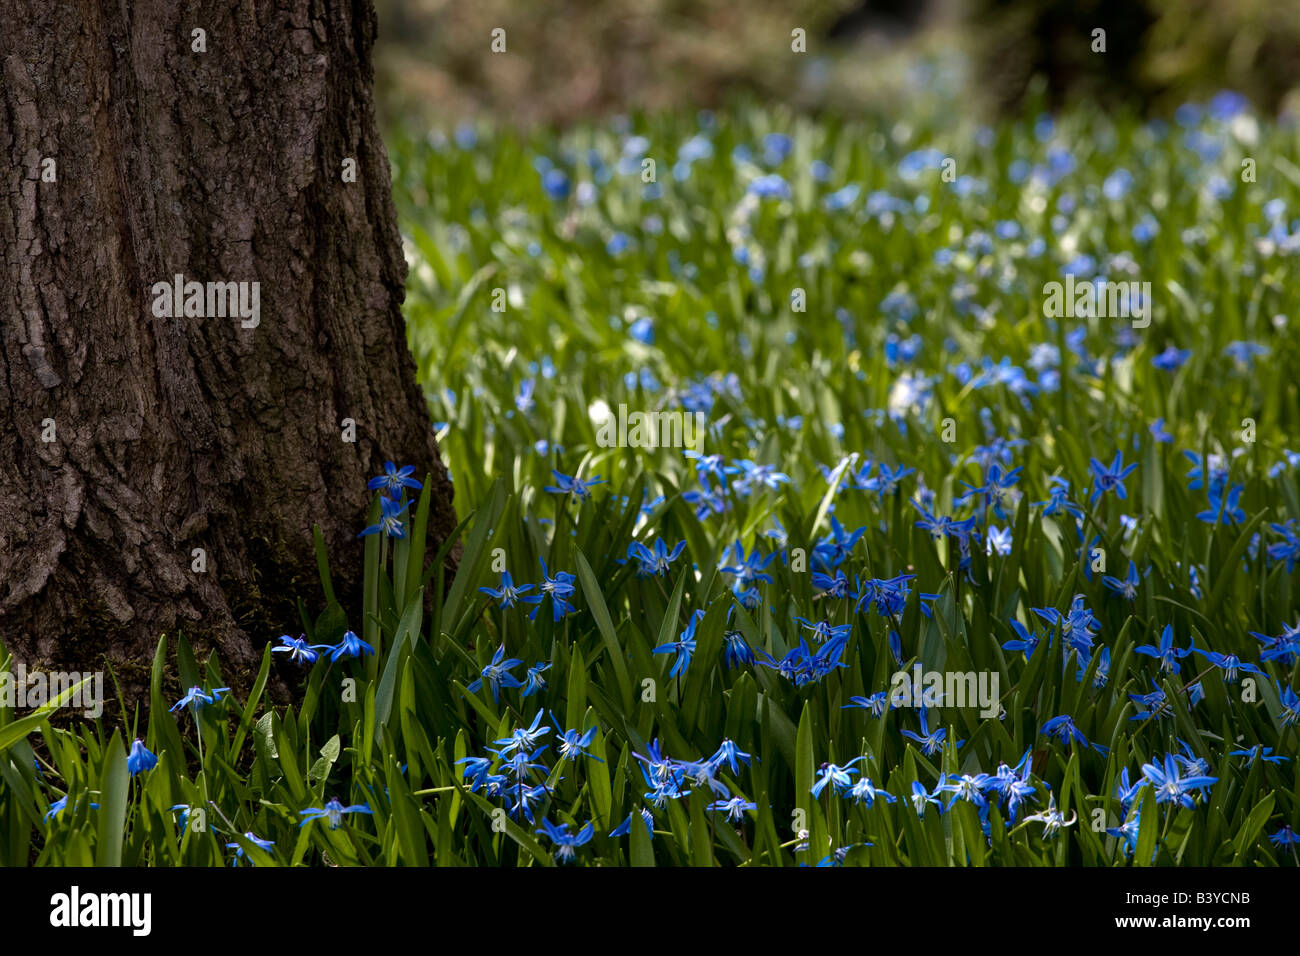 Wildflowers by tree trunk - Stock Image